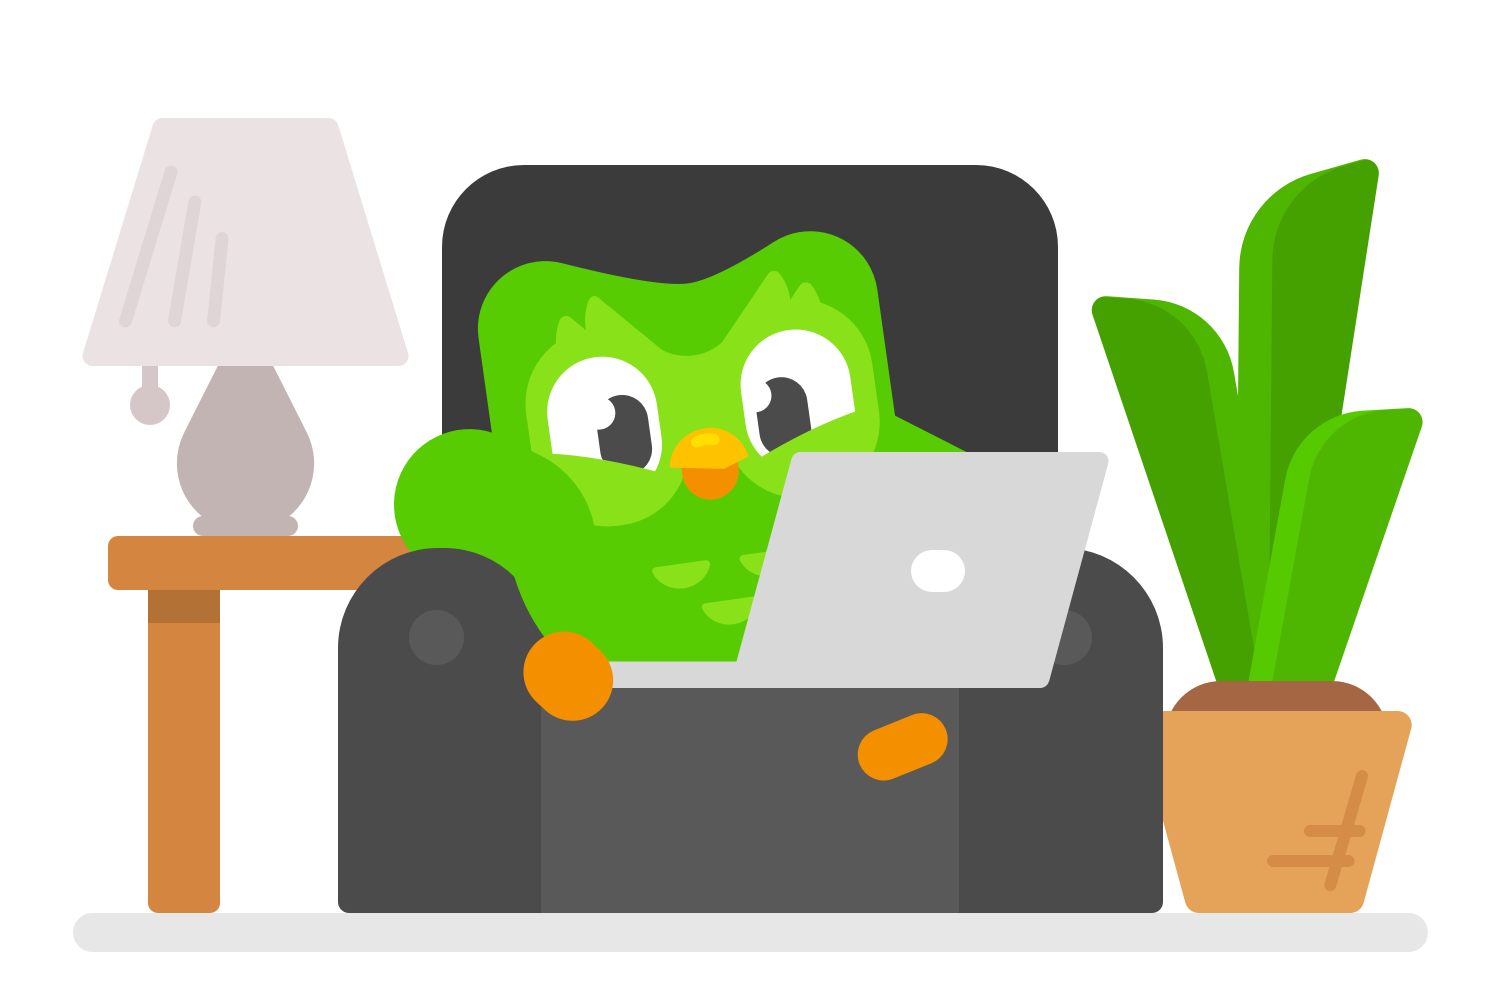 A step-by-step guide to preparing for the Duolingo English Test